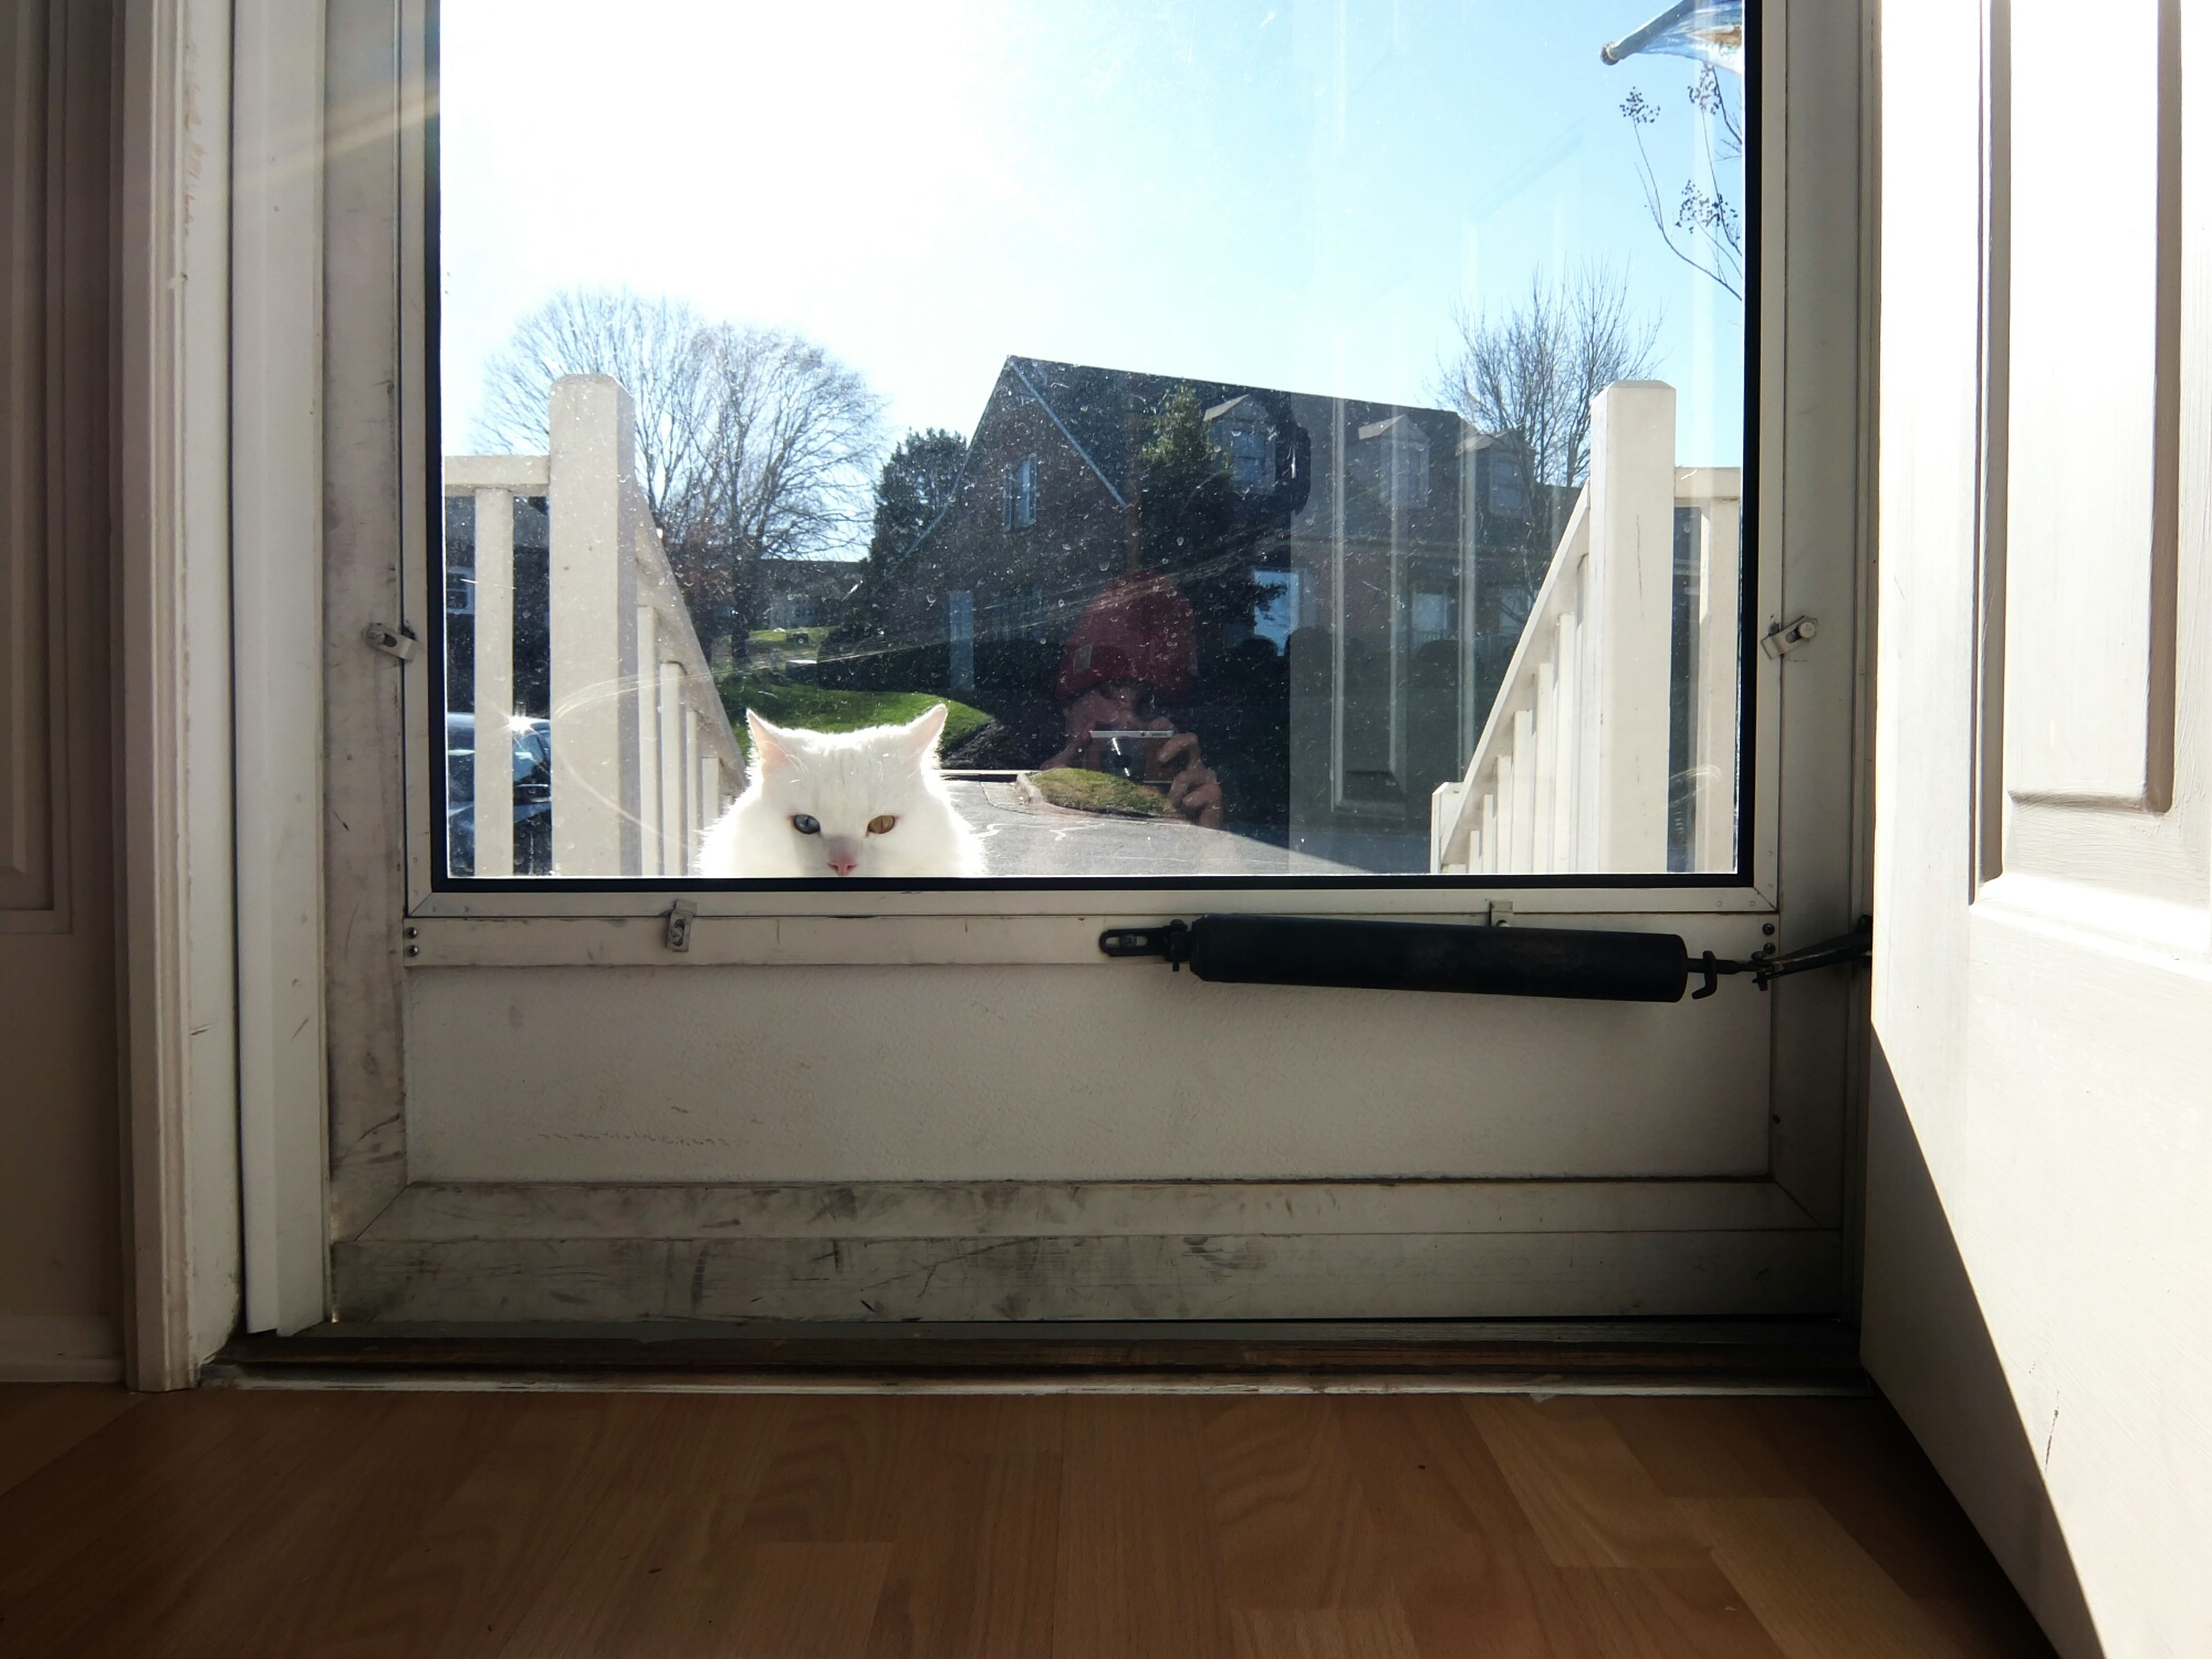 pets, domestic animals, animal themes, window, mammal, one animal, architecture, building exterior, built structure, glass - material, dog, transparent, window sill, house, indoors, looking through window, domestic cat, tree, day, cat